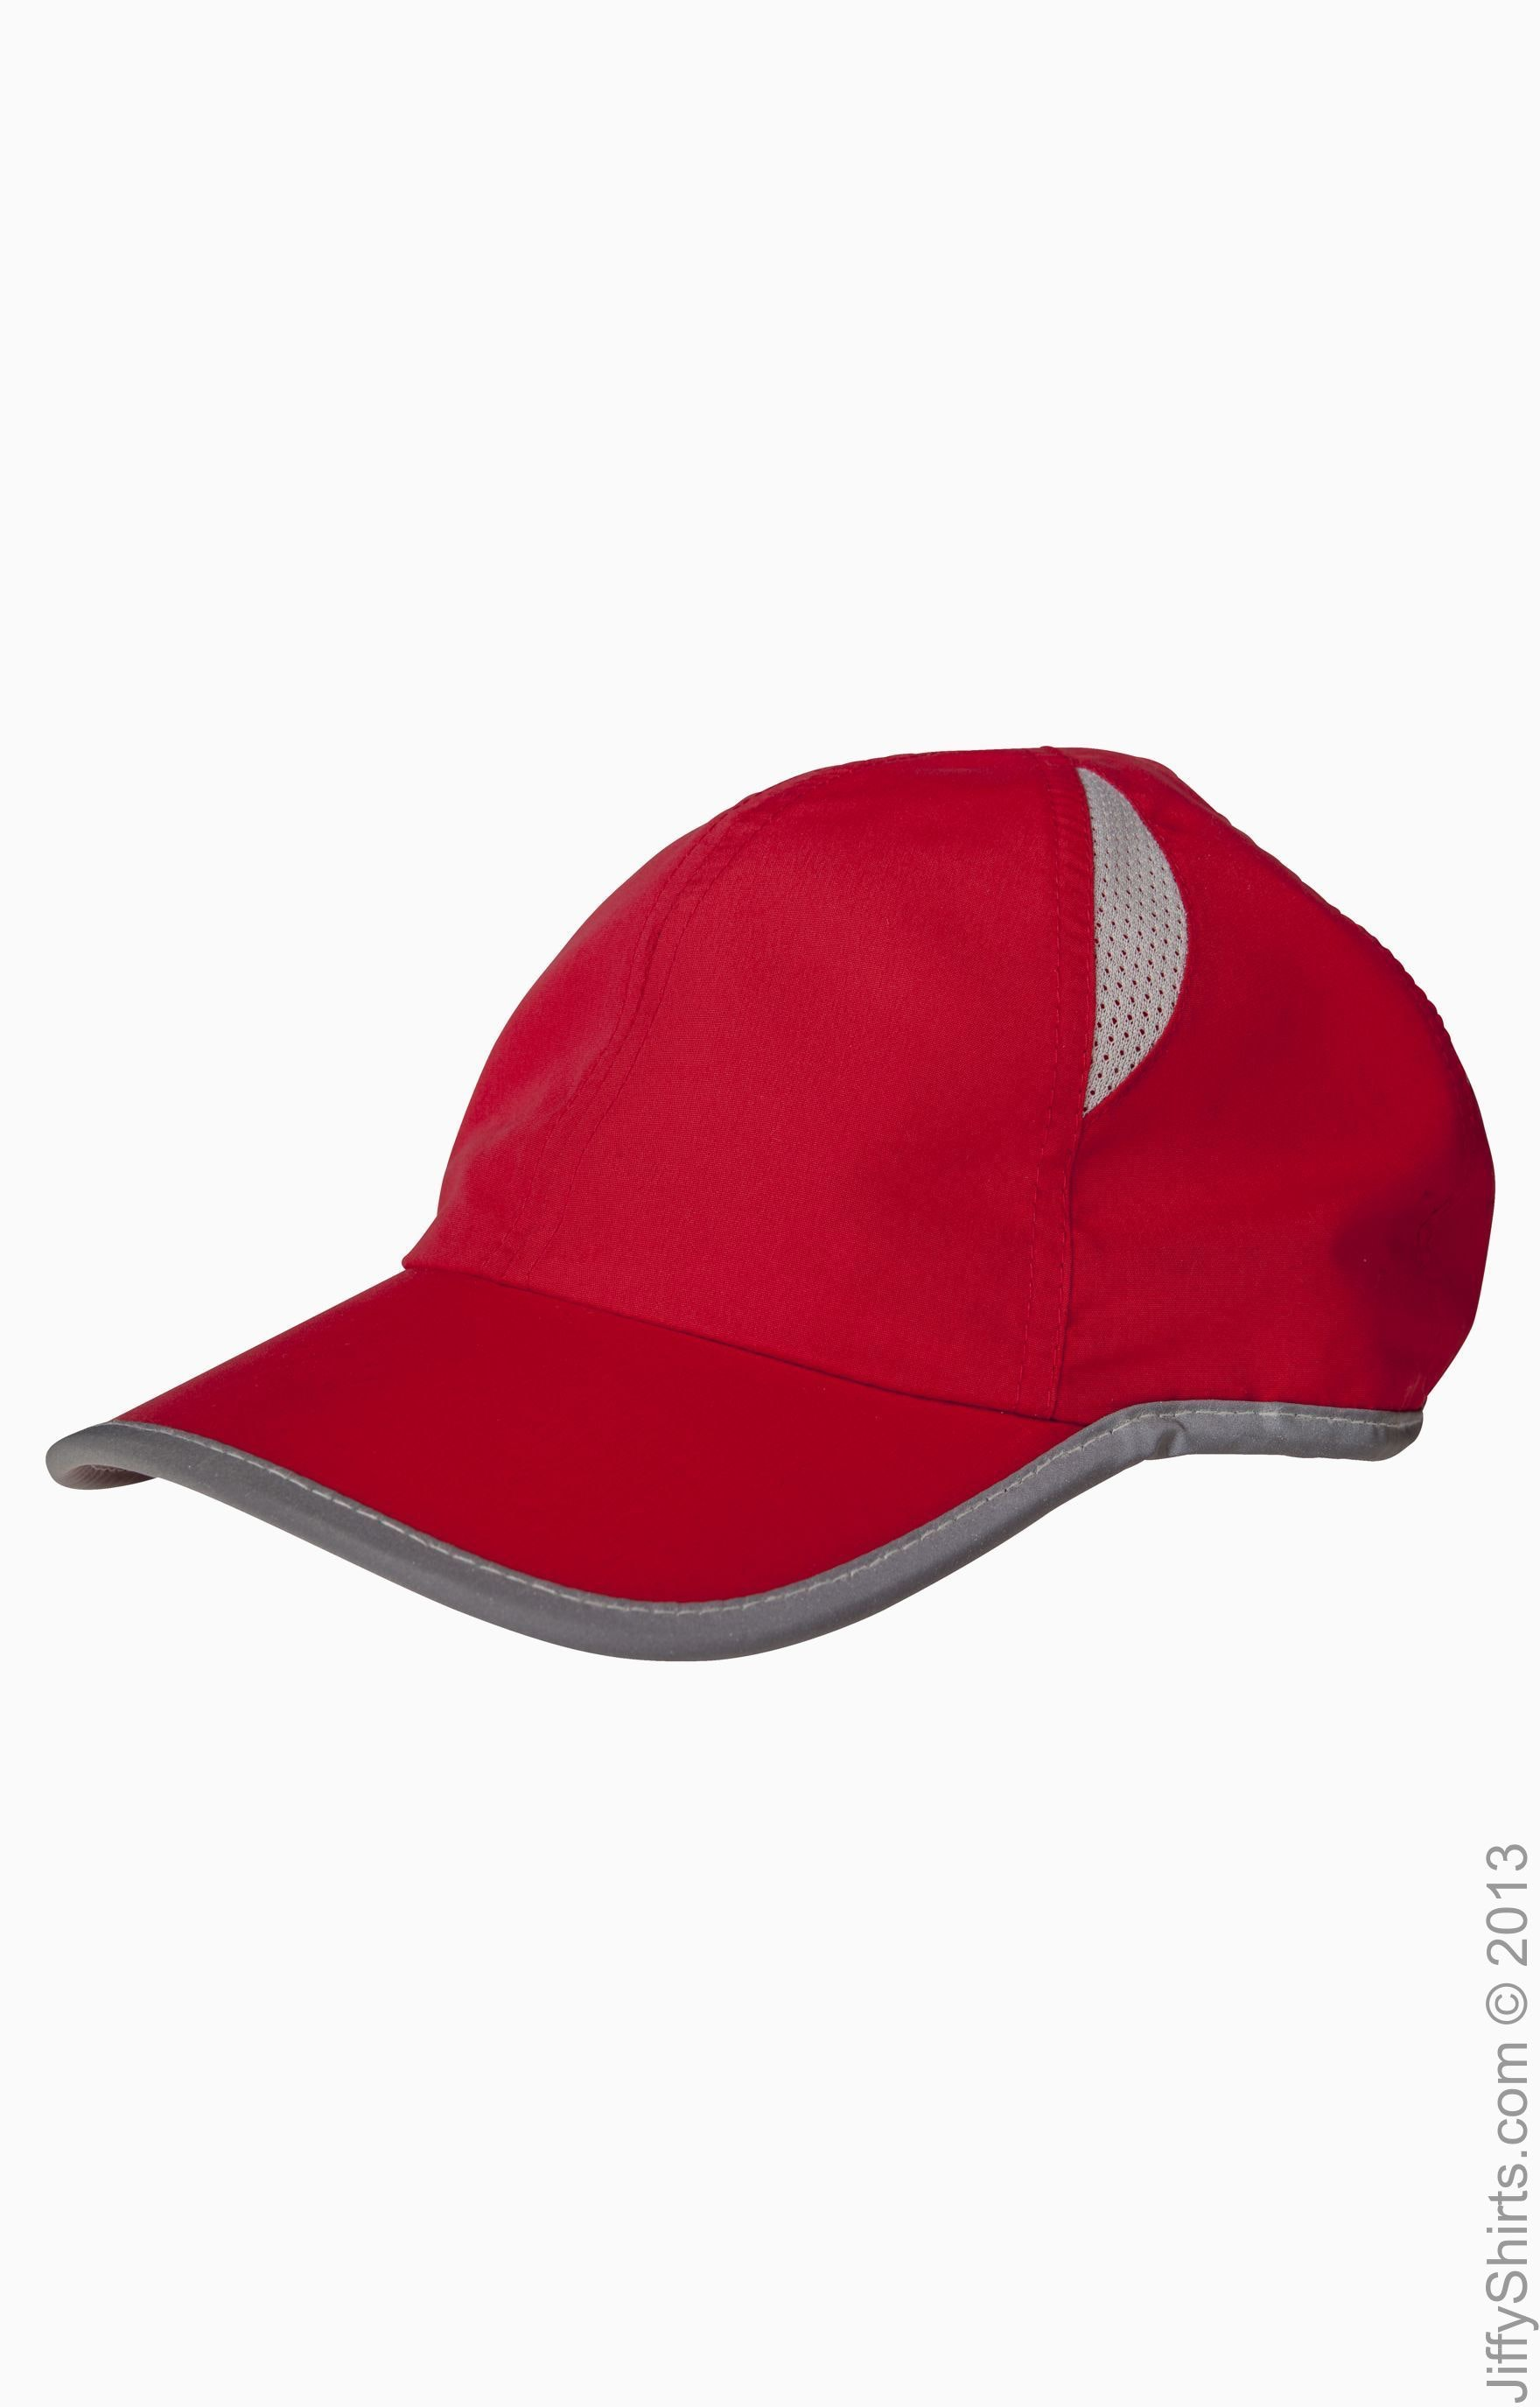 BA514 - Red